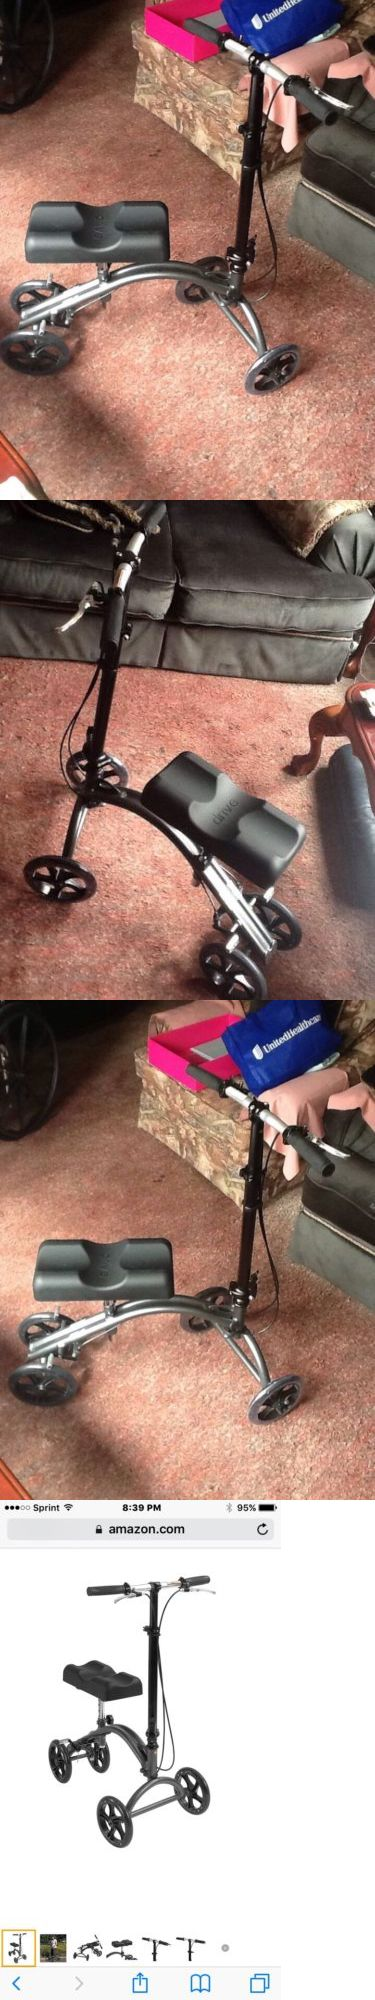 Crutches: Drive Medical Dv8 Aluminum Steerable Knee Walker Crutch Alternative-Drive Medica BUY IT NOW ONLY: $149.99